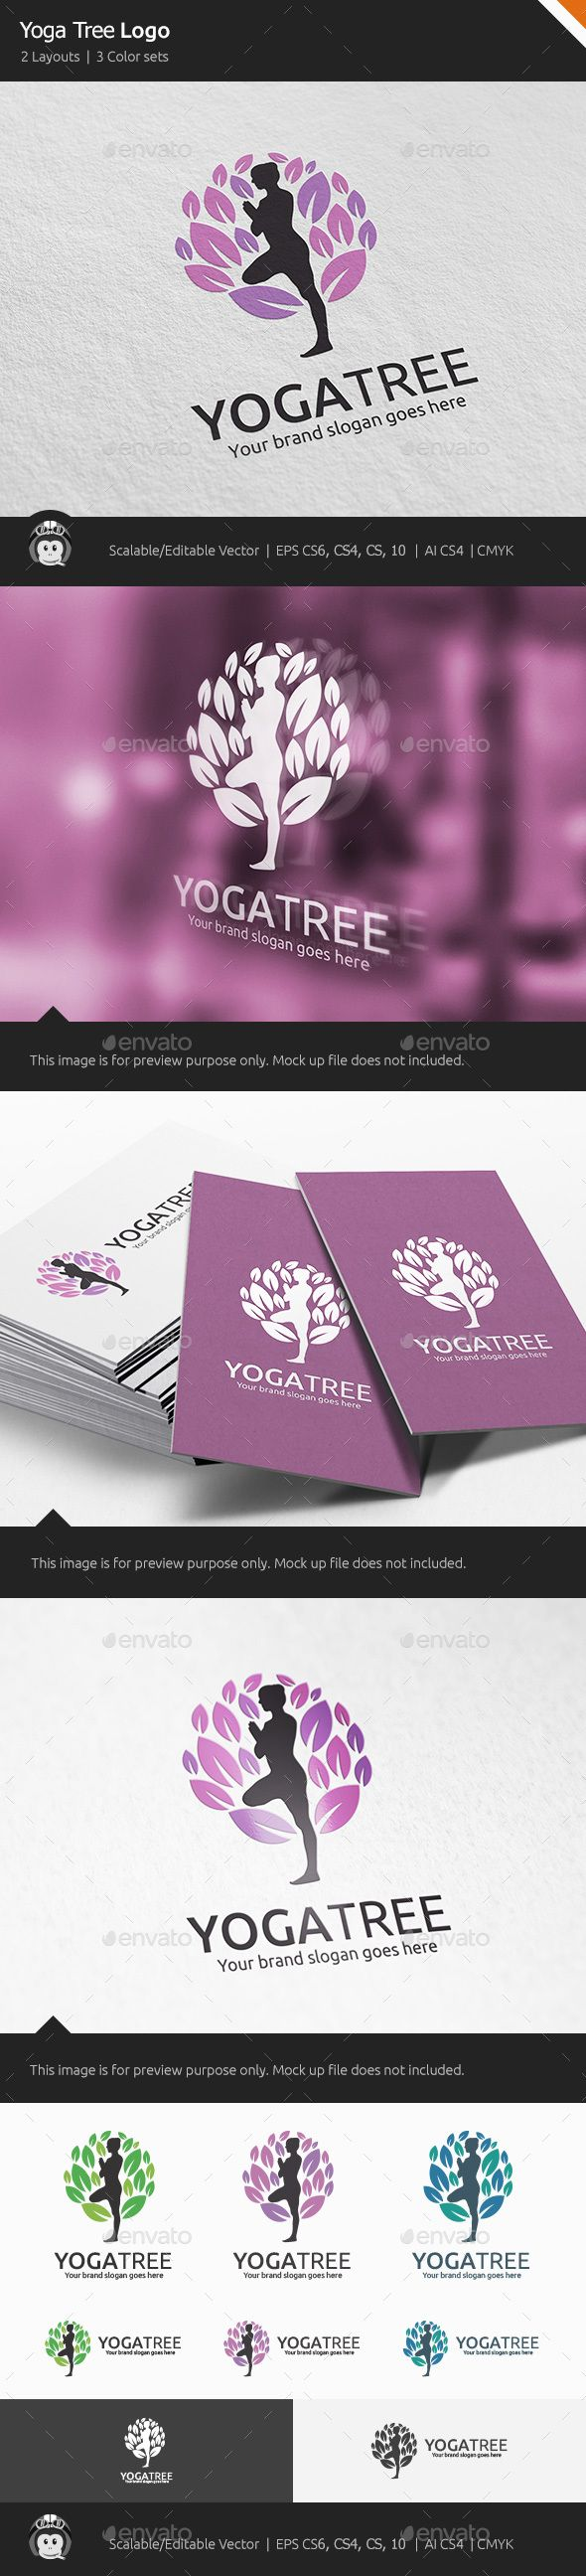 Yoga Tree Logo - Vector Abstract Logo Design Template Vector EPS, AI Illustrator. Download here: http://graphicriver.net/item/yoga-tree-logo/16728333?ref=yinkira